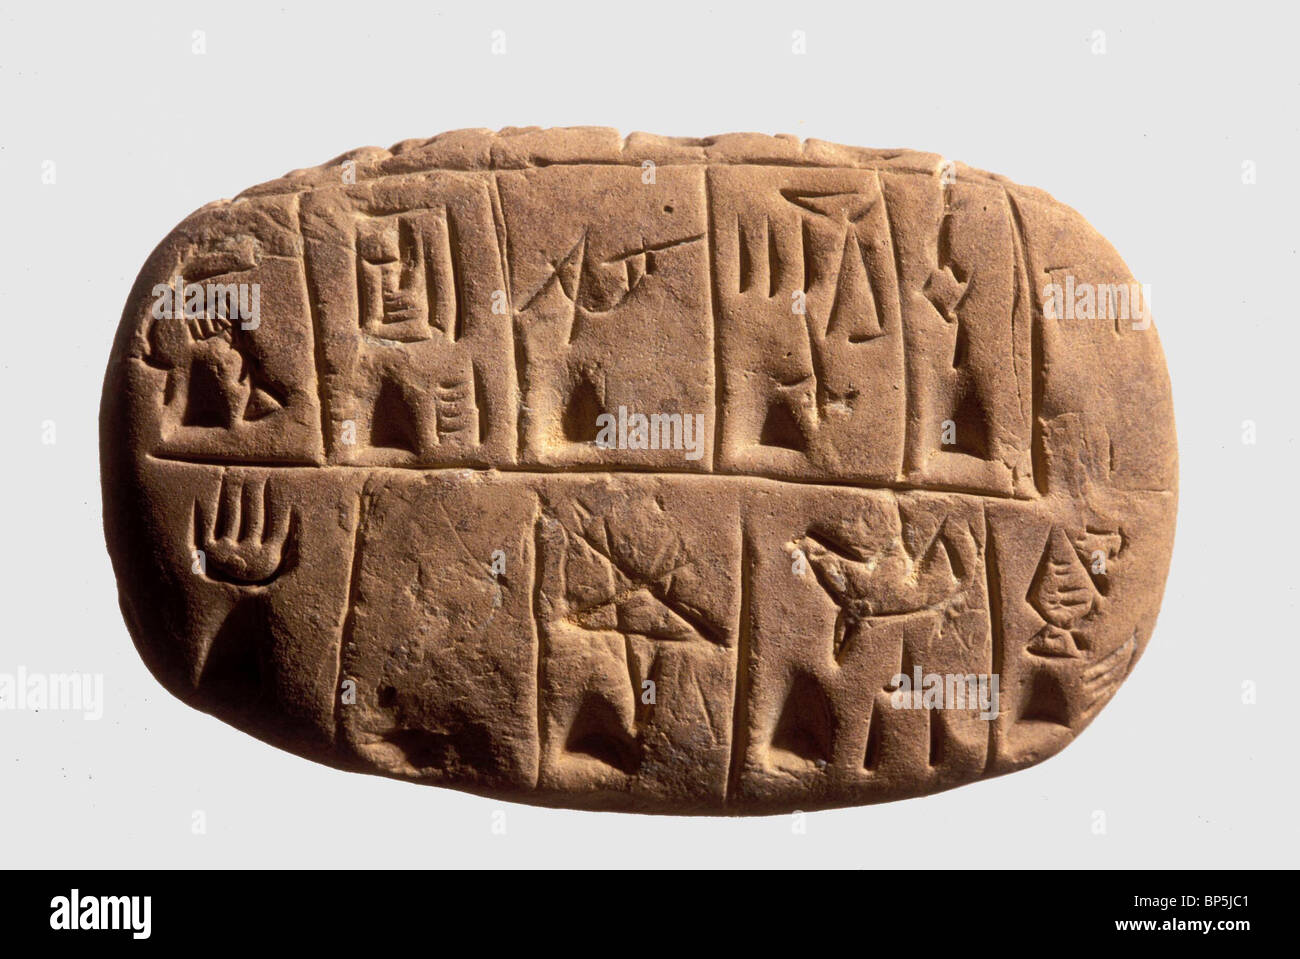 Clay tablet inscribed with an Archaic Pictographic script. Originating in Mesopotamia in the late fourth millenium - Stock Image